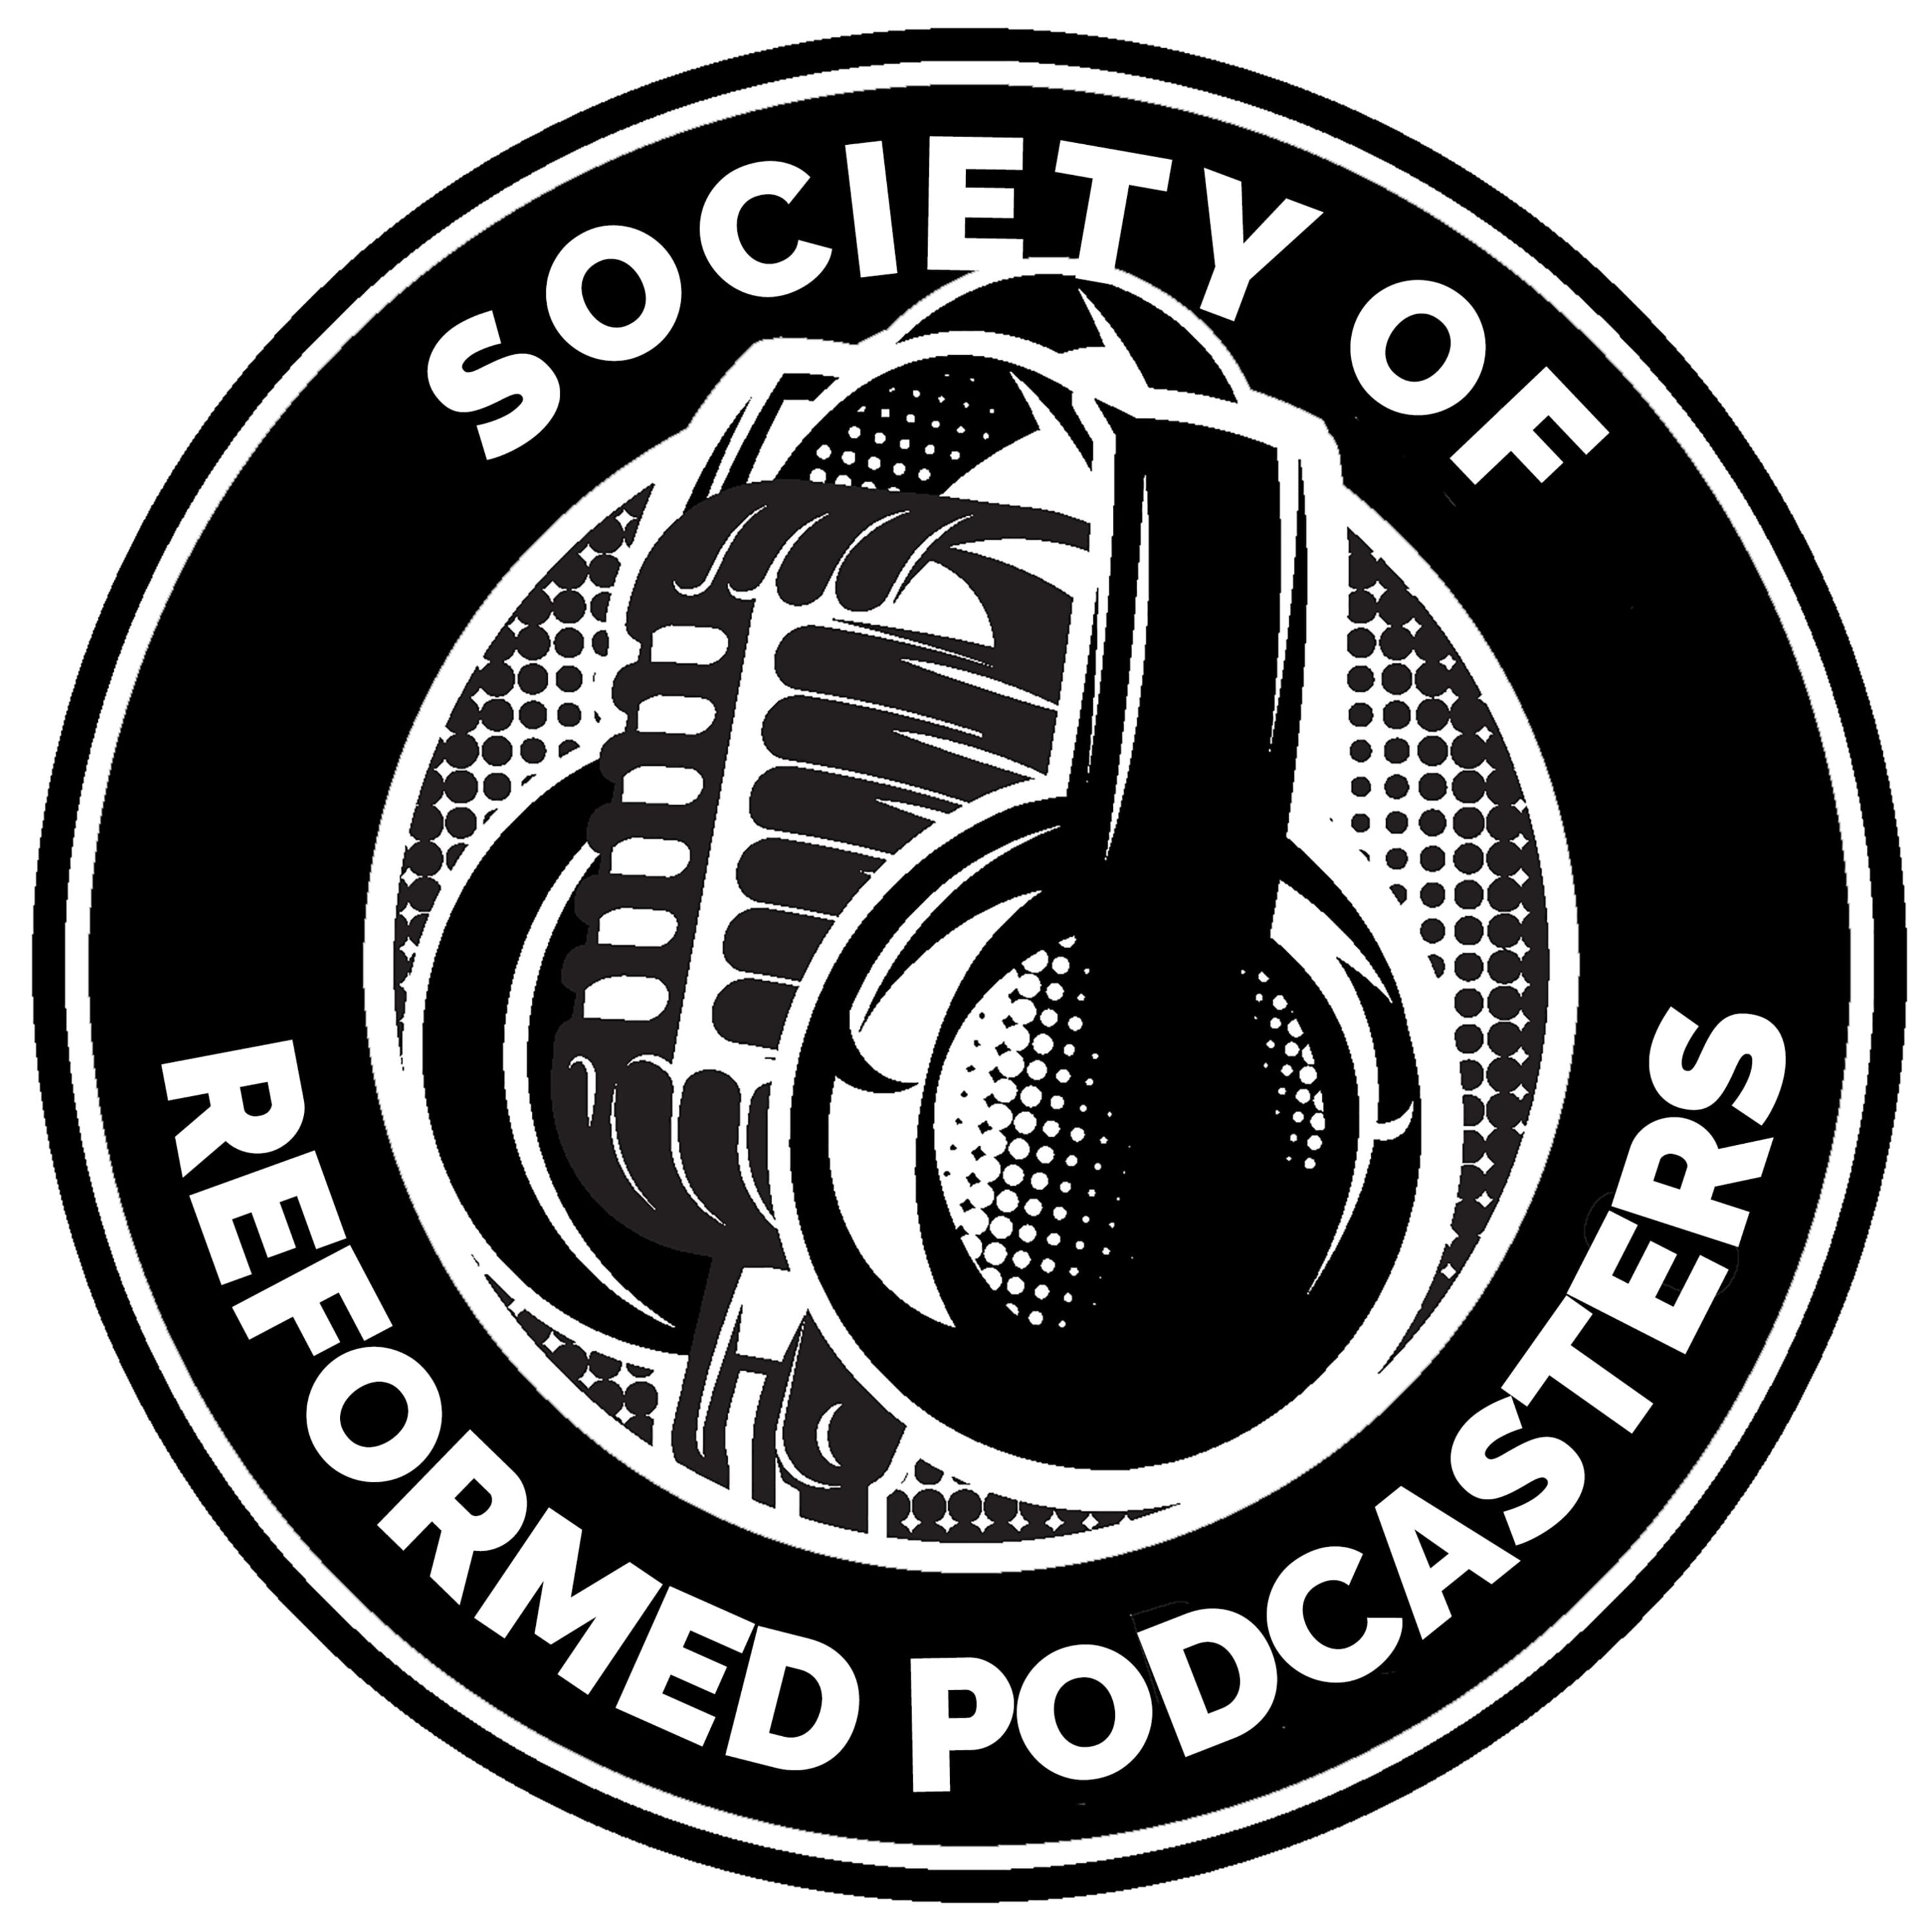 The Society of Reformed Podcasters